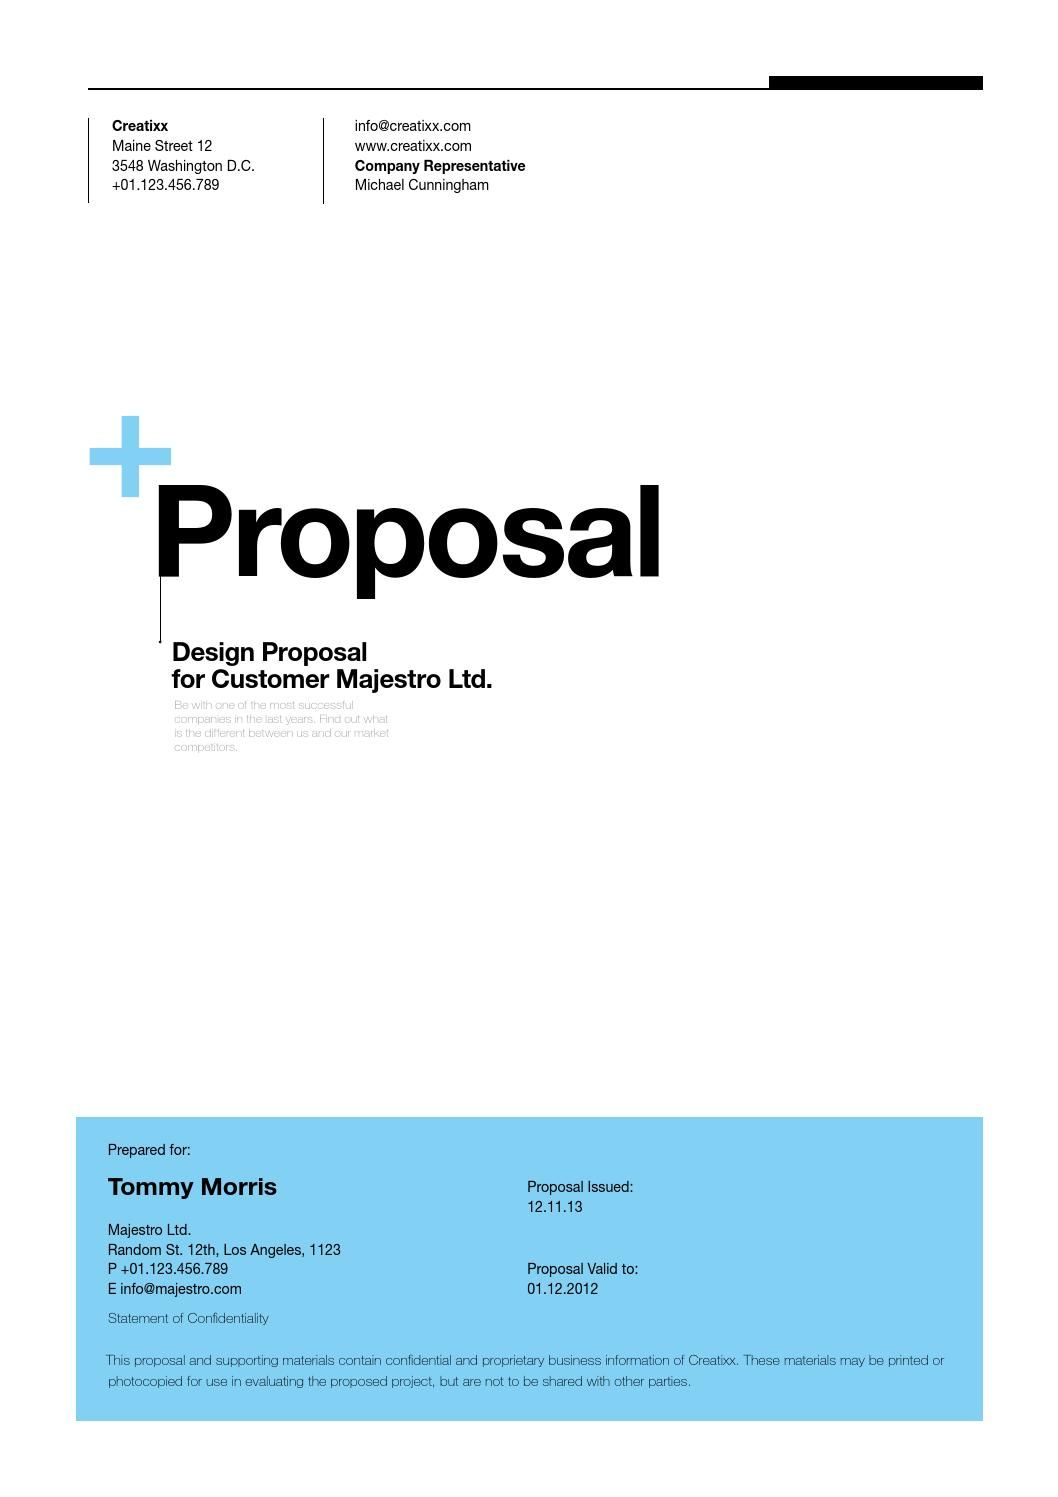 suisse design proposal template minimal and professional project proposal template for creative businesses created in adobe indesign and ms word